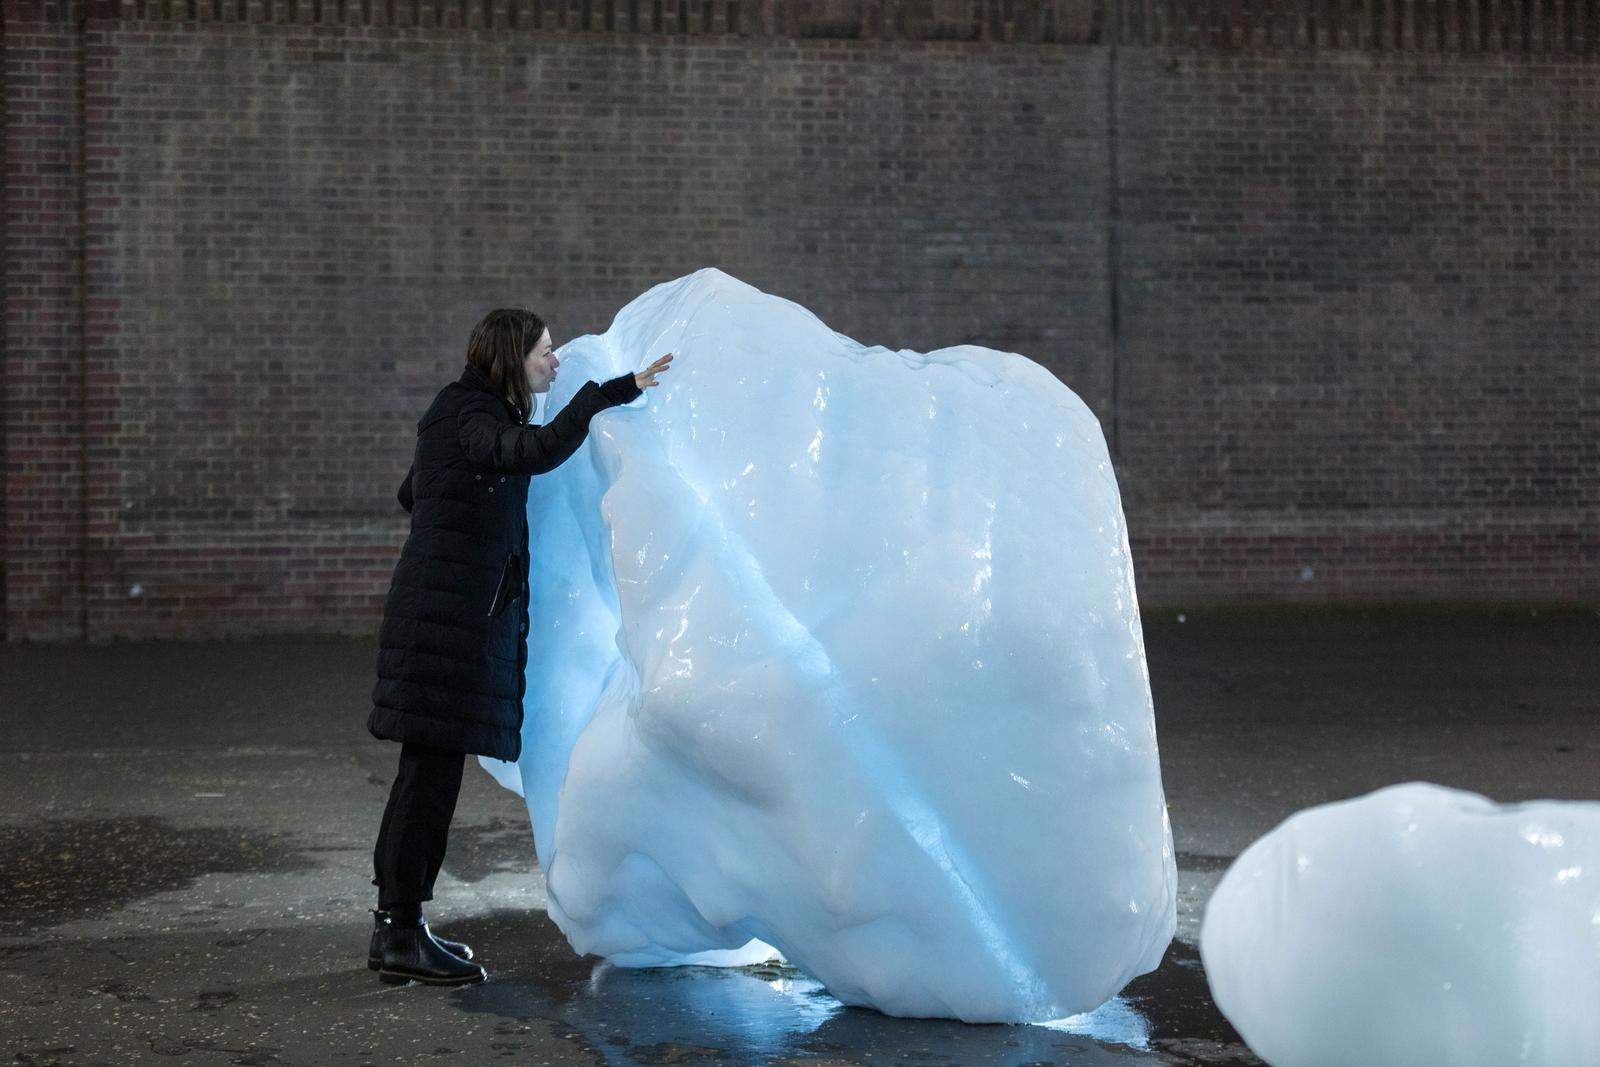 A person kisses a giant block of glacial ice on the streets of London